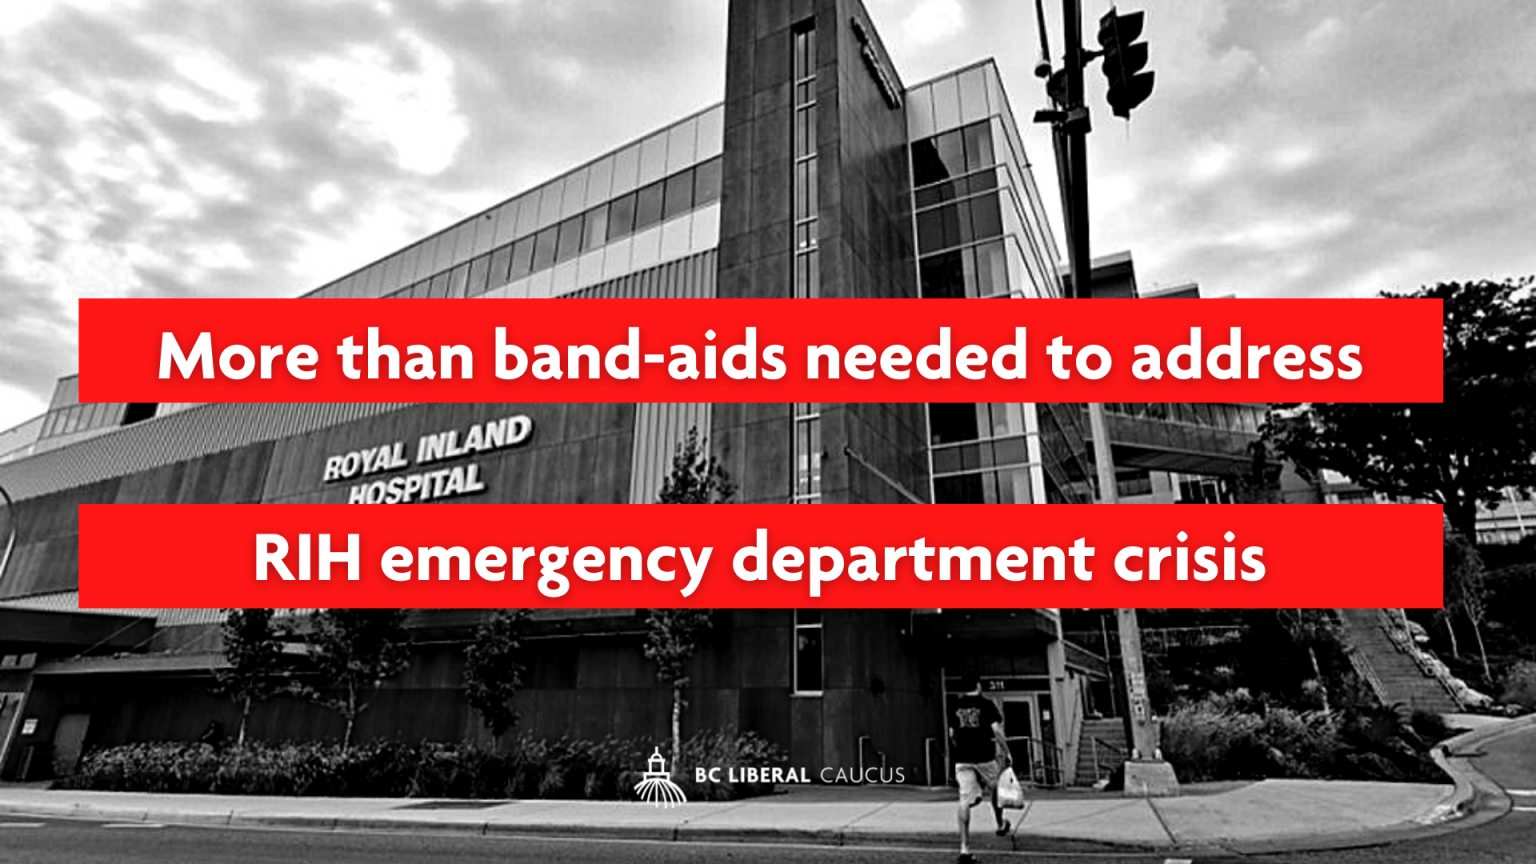 More than band-aids needed to address RIH emergency department crisis